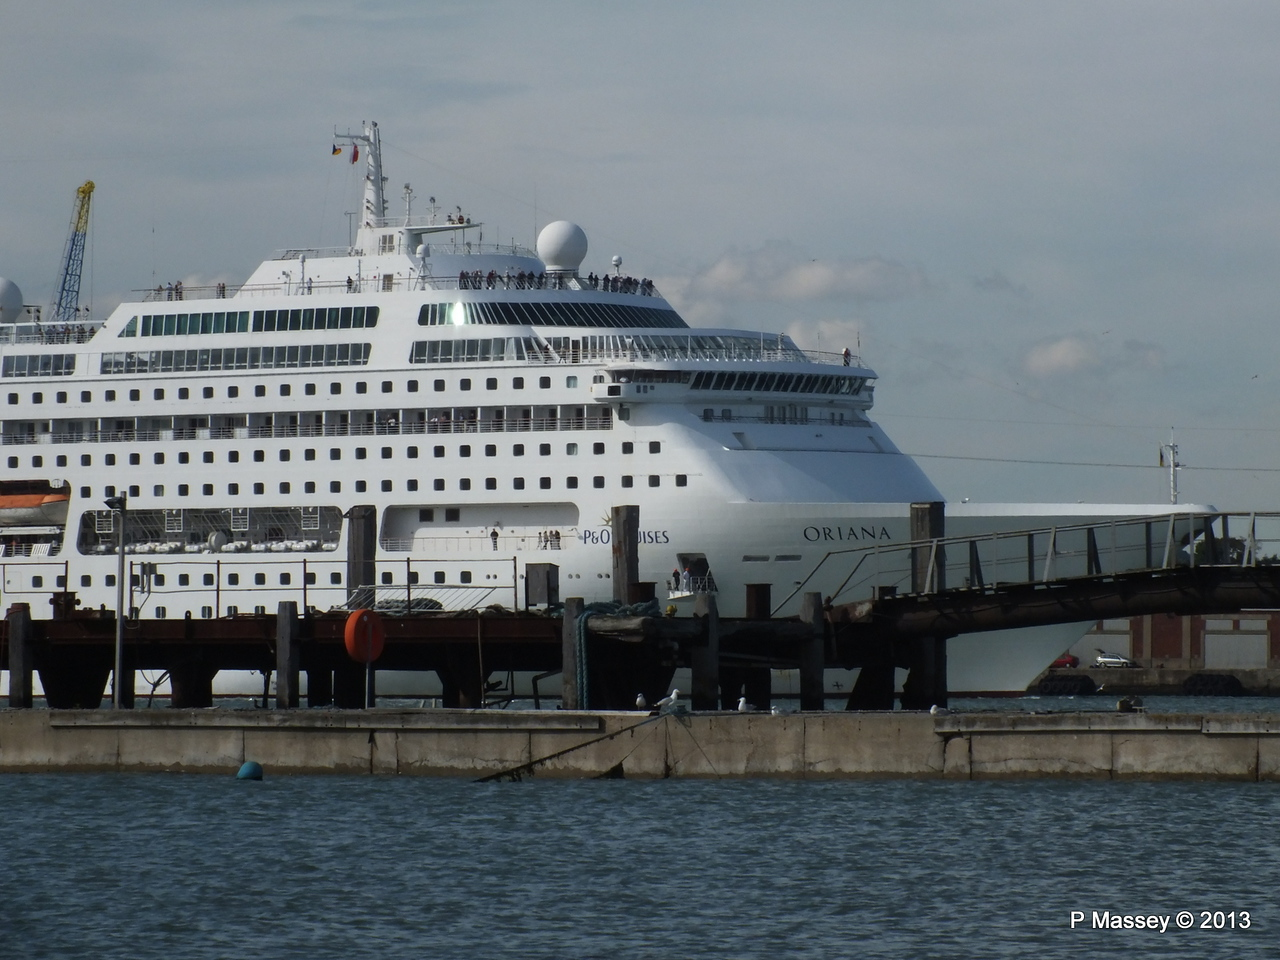 ORIANA over Husbands Jetty PDM 27-05-2013 17-04-34